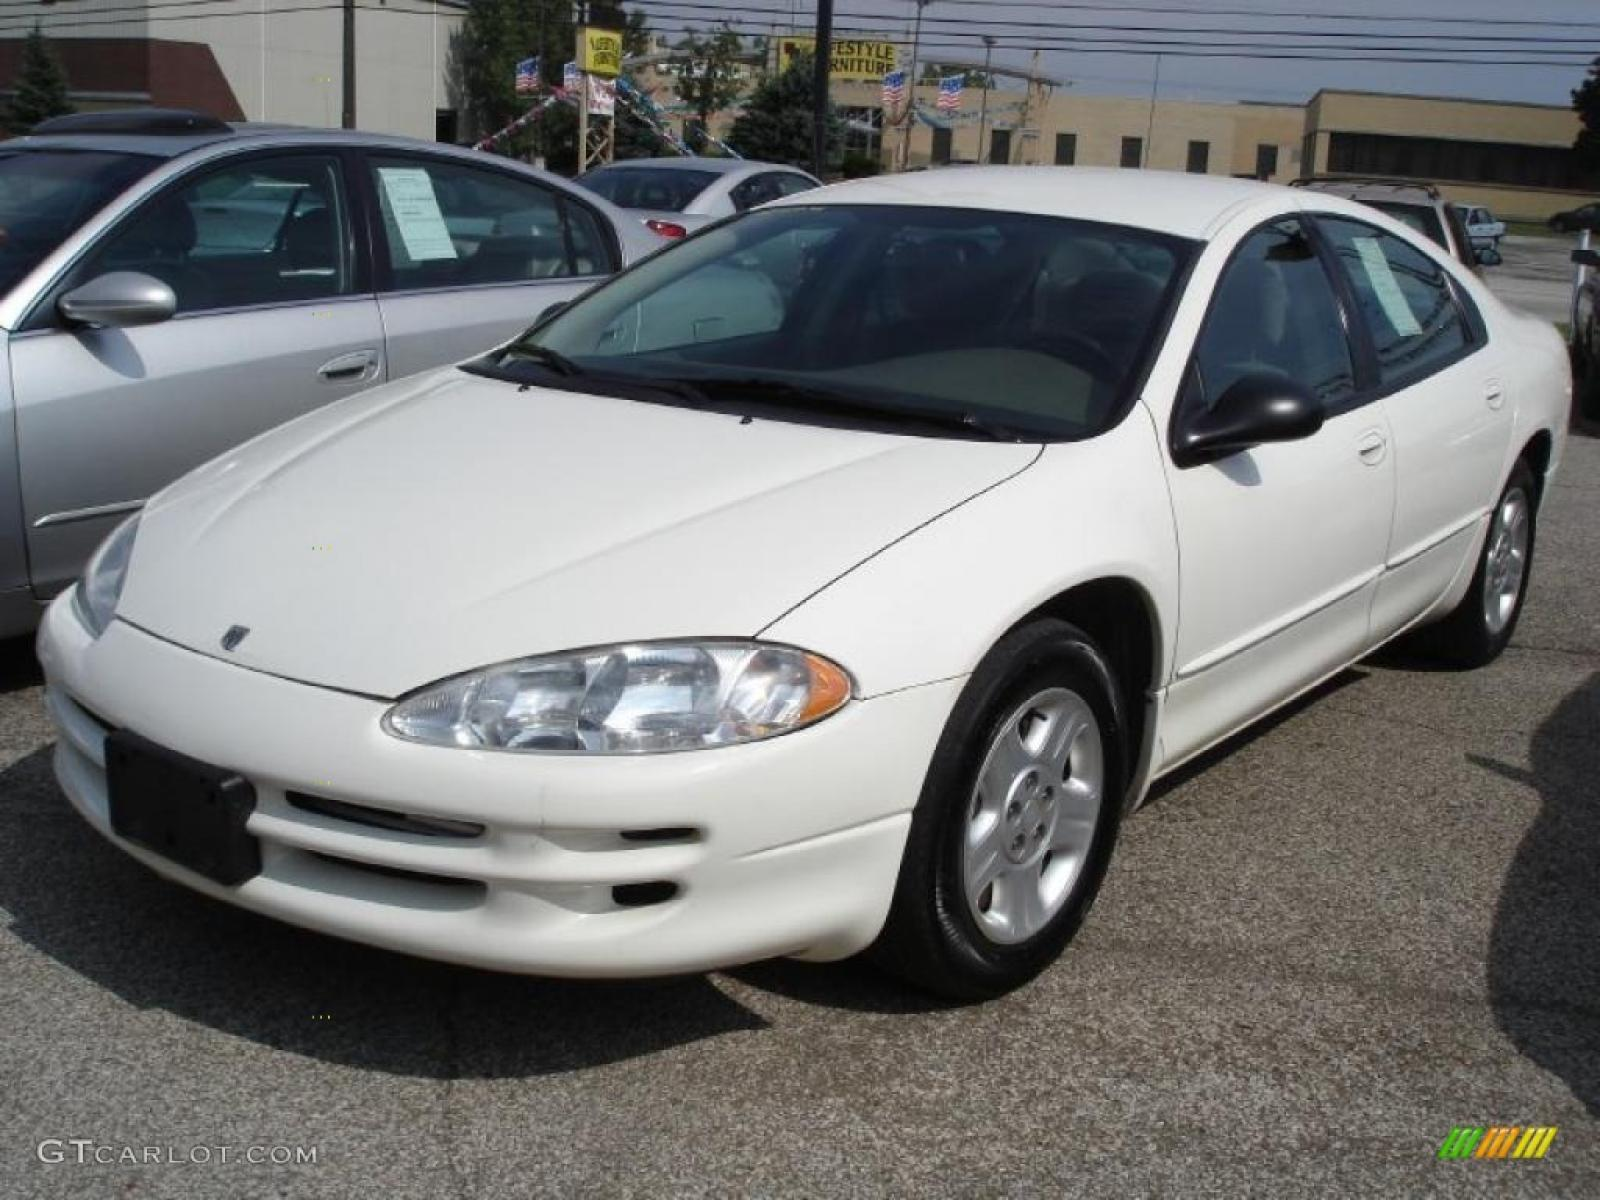 2002 Dodge Intrepid Information And Photos Zombiedrive